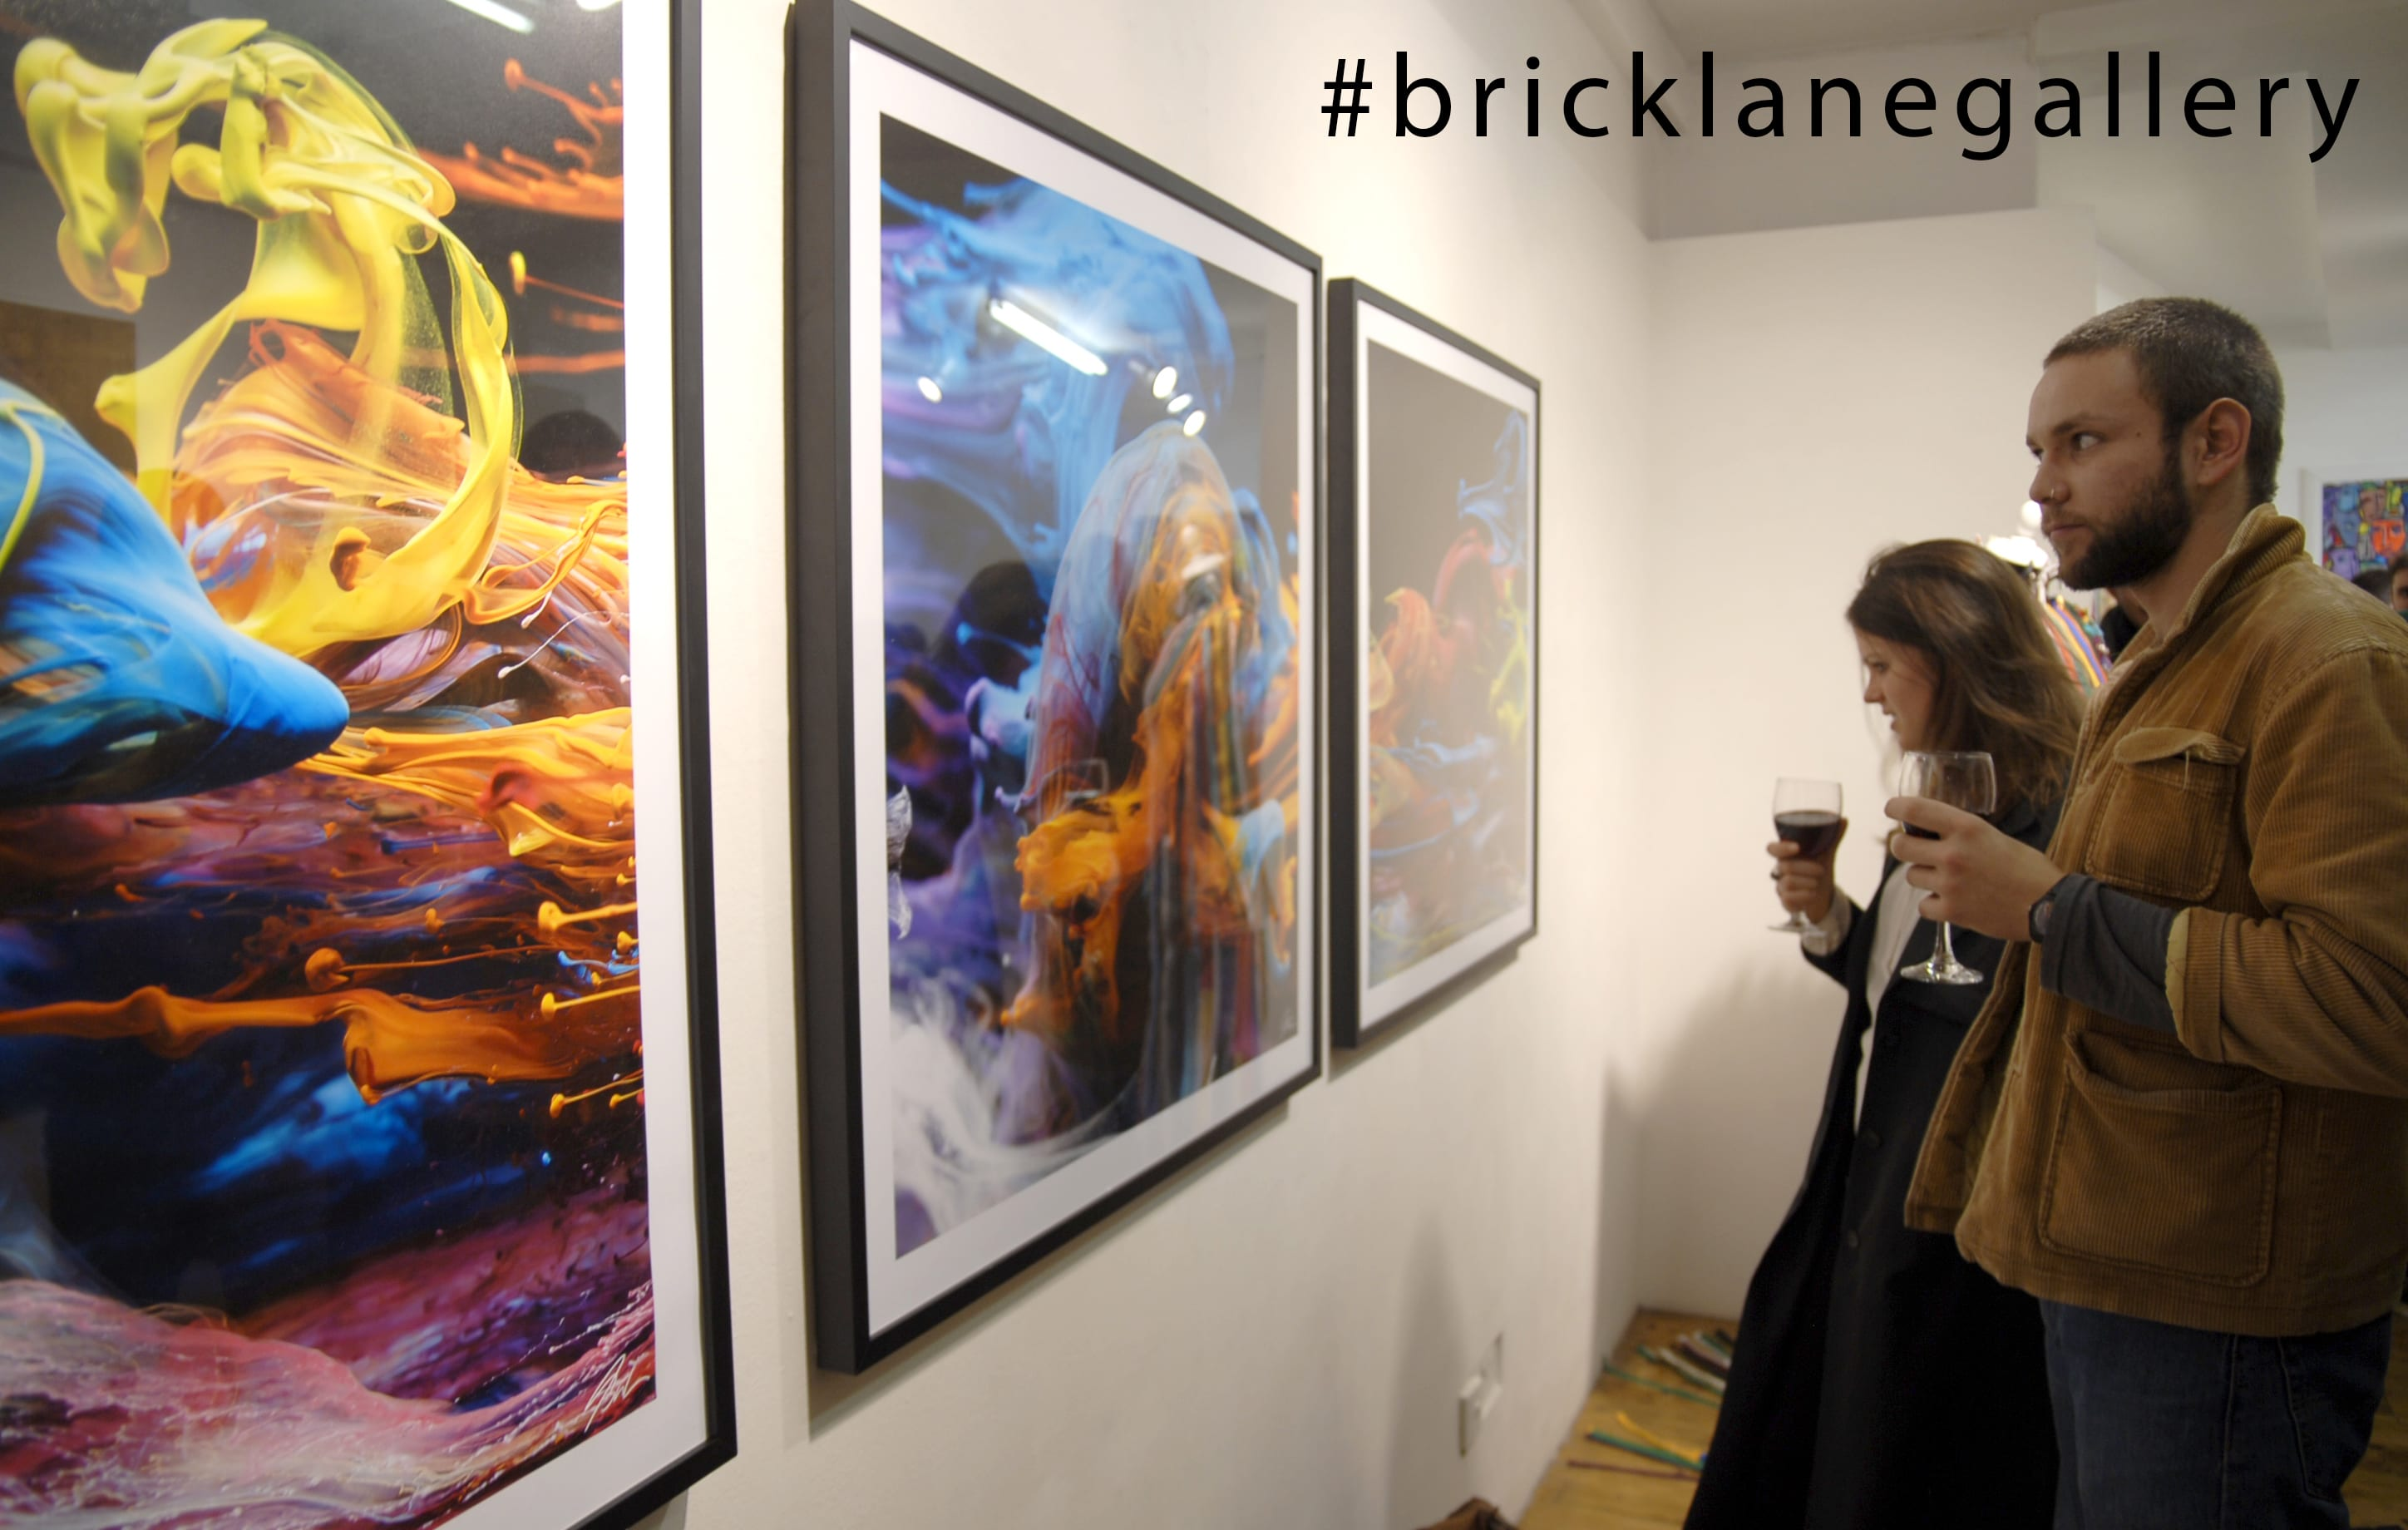 Brick Lane Gallery